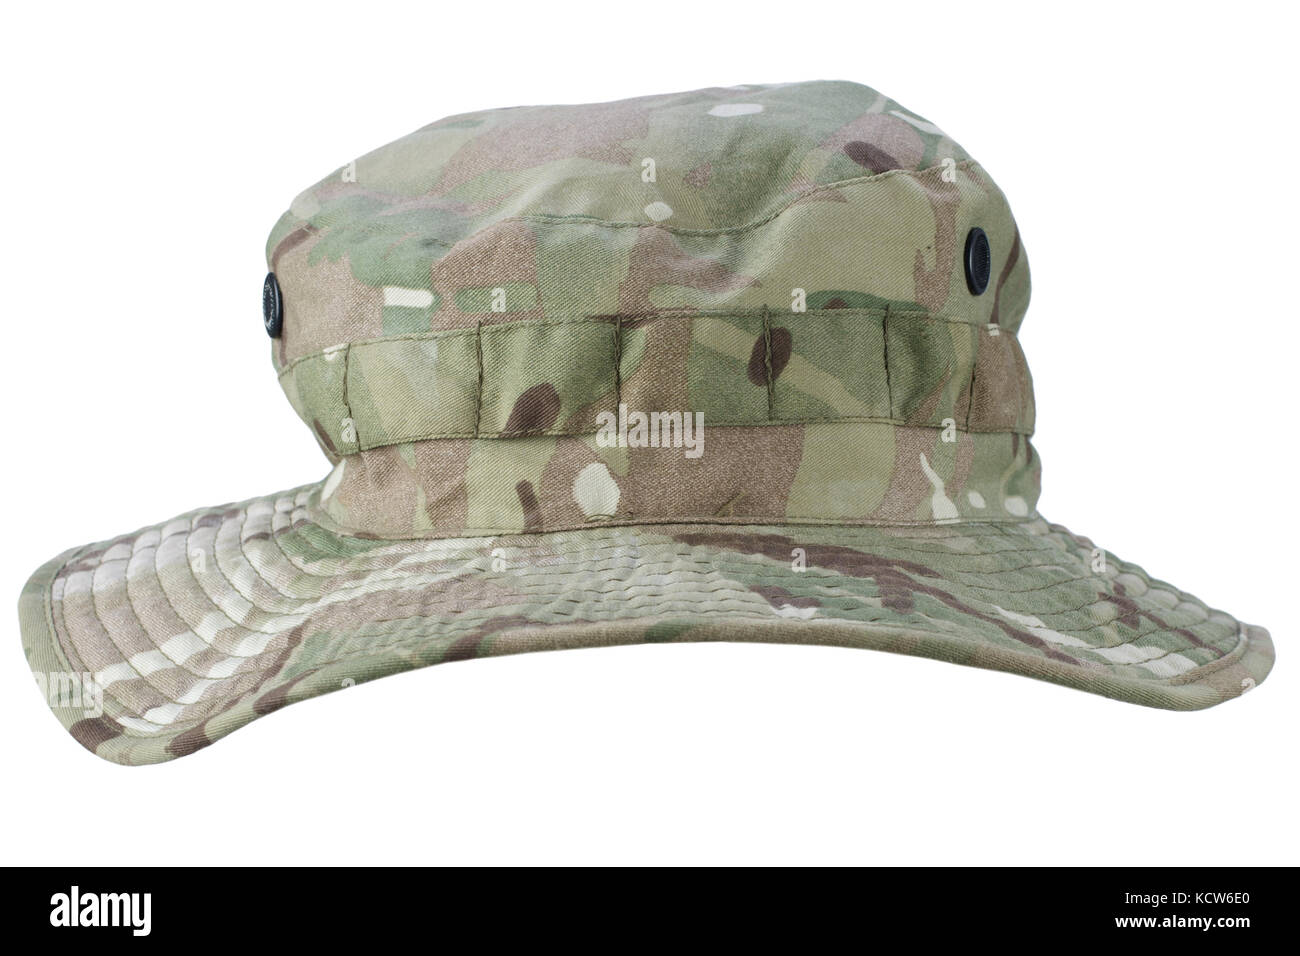 997fe5e7005627 Boonie Hat Stock Photos & Boonie Hat Stock Images - Alamy